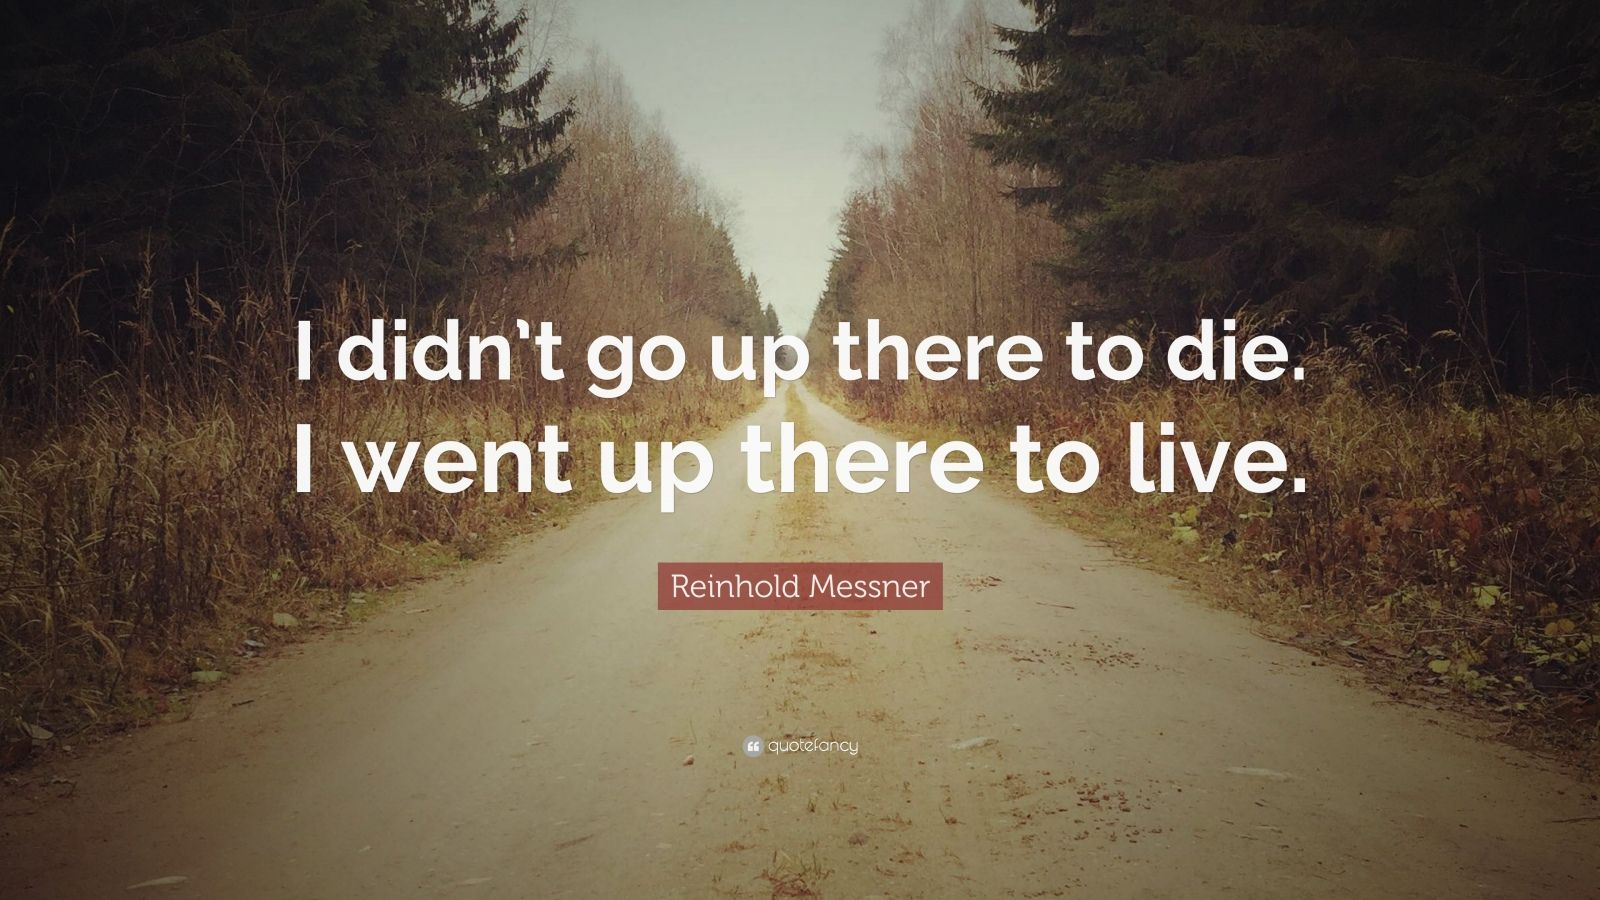 Steve Jobs Wallpaper Quotes Reinhold Messner Quote I Didn T Go Up There To Die I